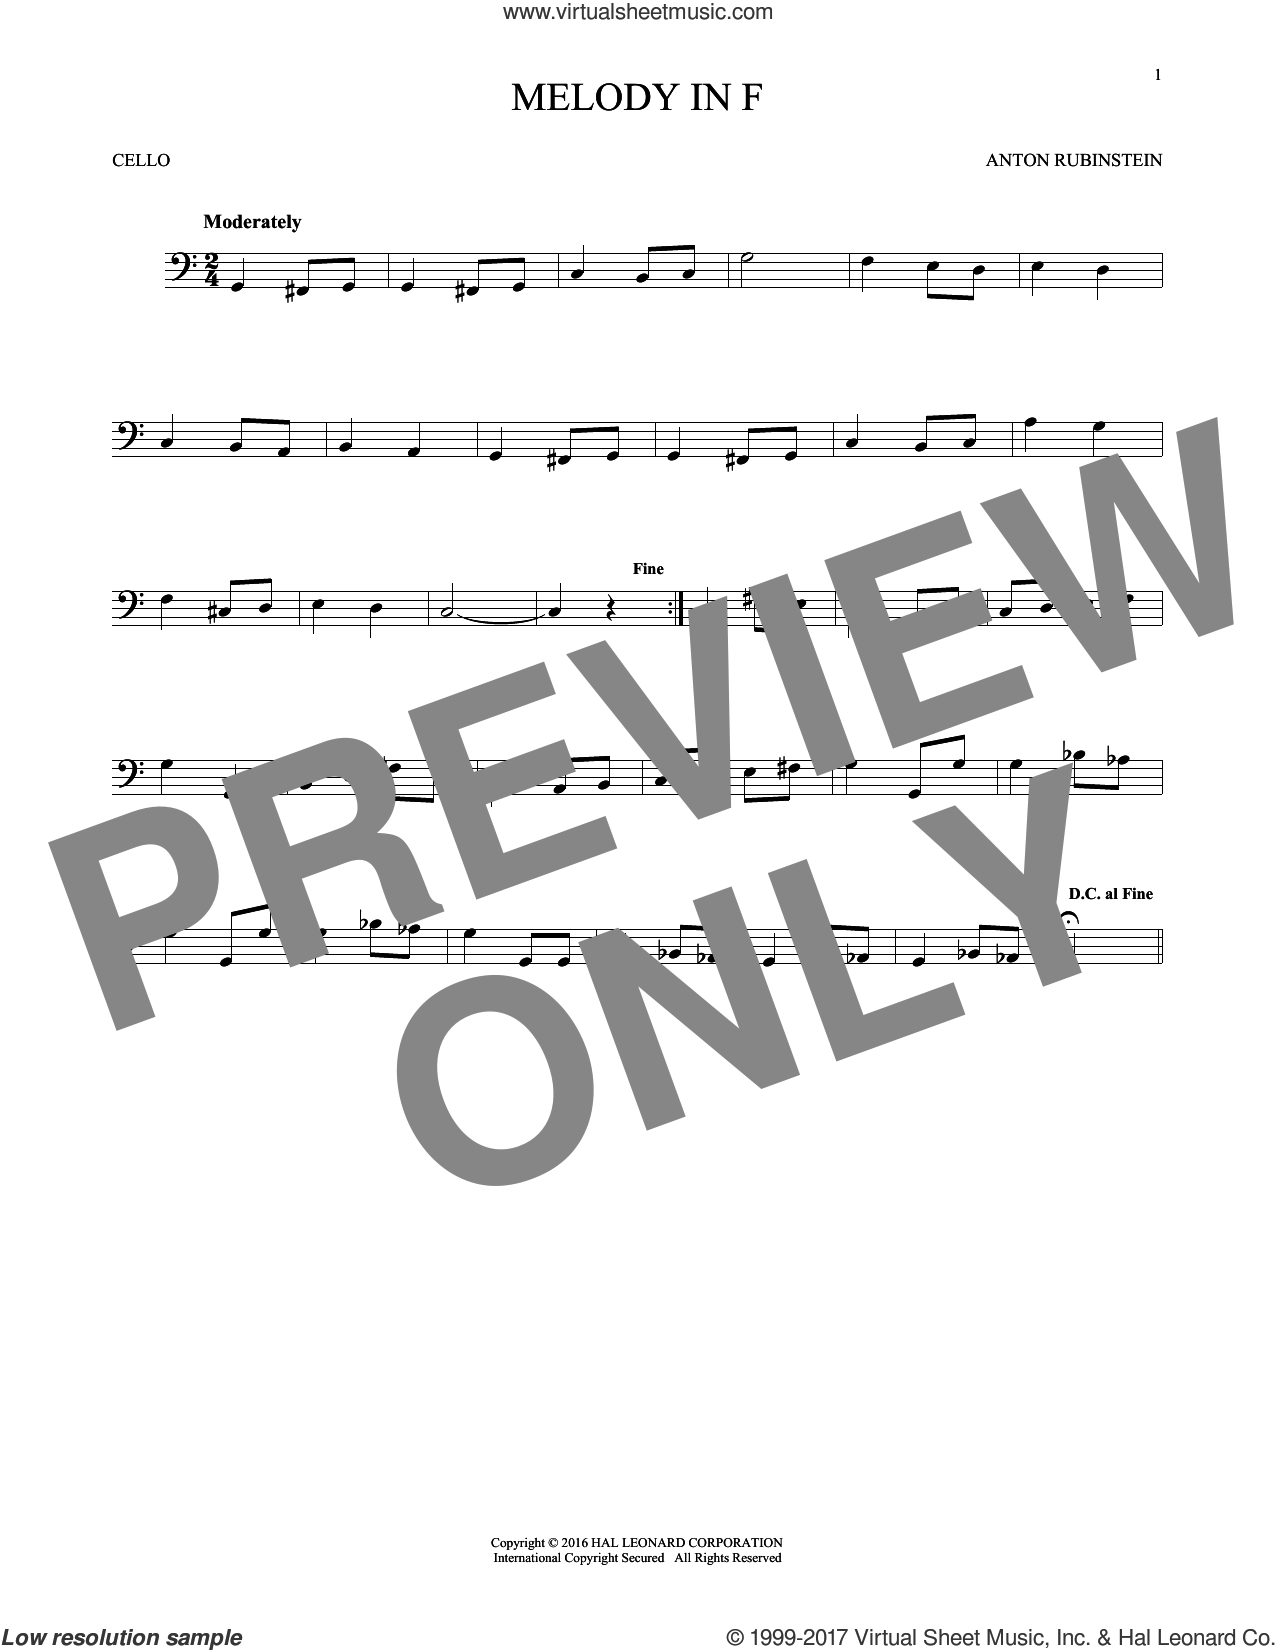 Melody In F sheet music for cello solo by Anton Rubinstein, classical score, intermediate skill level